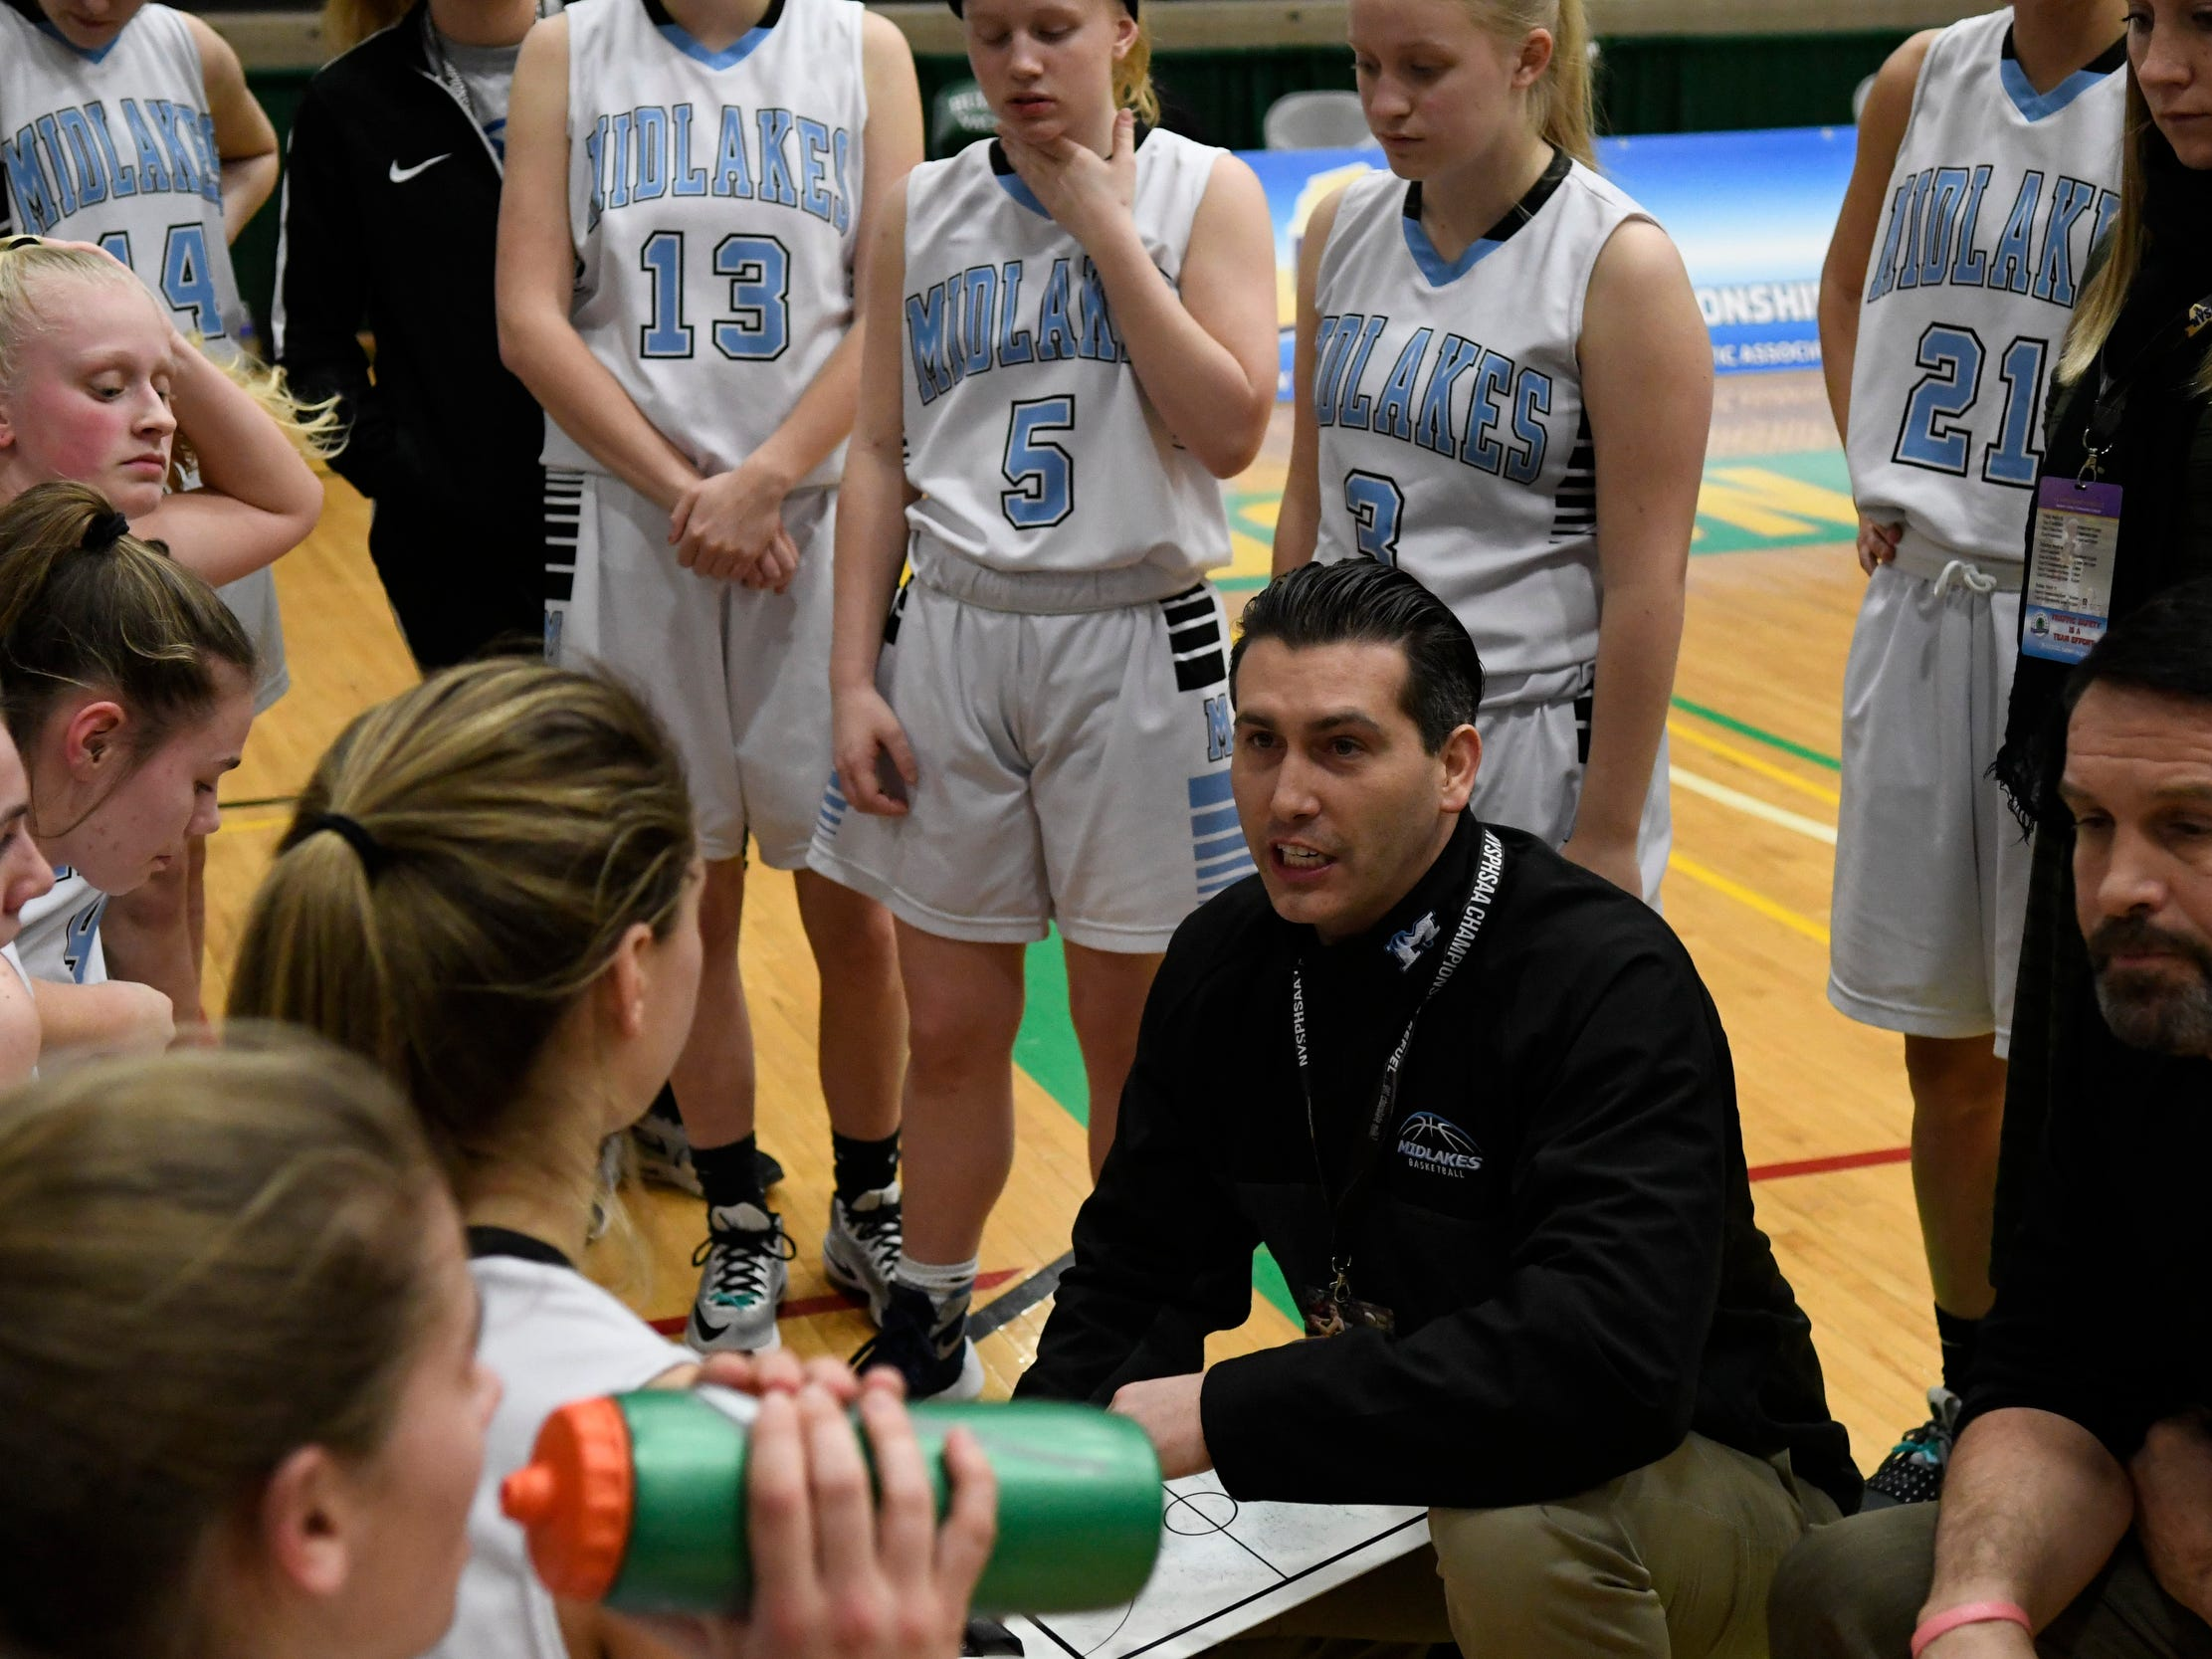 Midlakes girls basketball coach Nate Rich speaks to his players between quarters of the Class B State Championship against Irvington at Hudson Valley Community College on March 16, 2019, in Troy, N.Y.